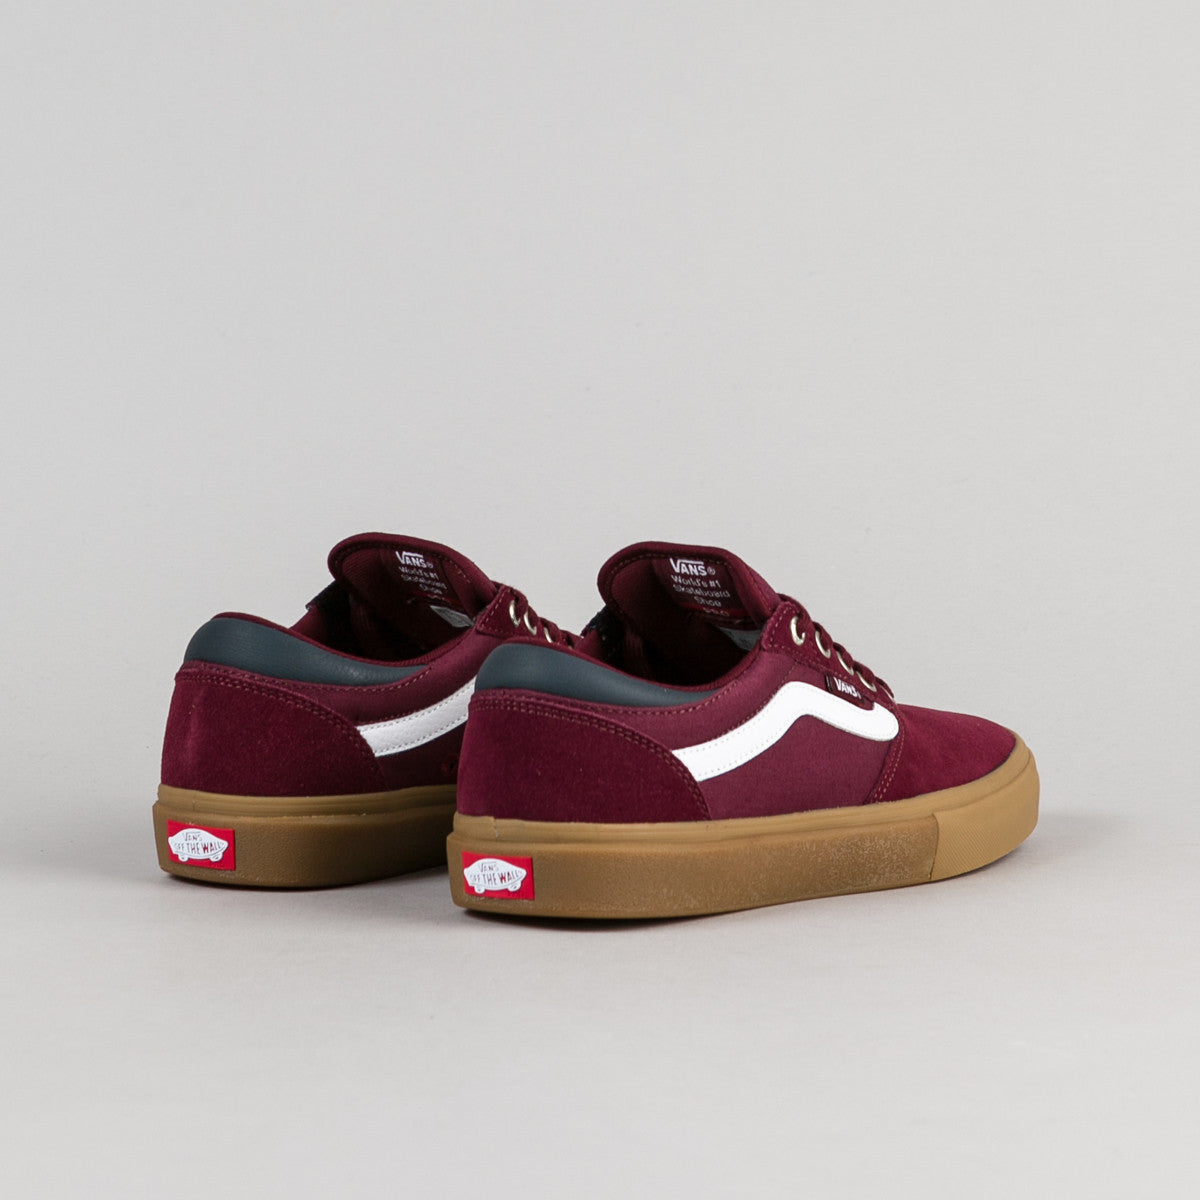 Vans Gilbert Crockett Pro Shoes - Port Royale / Gum